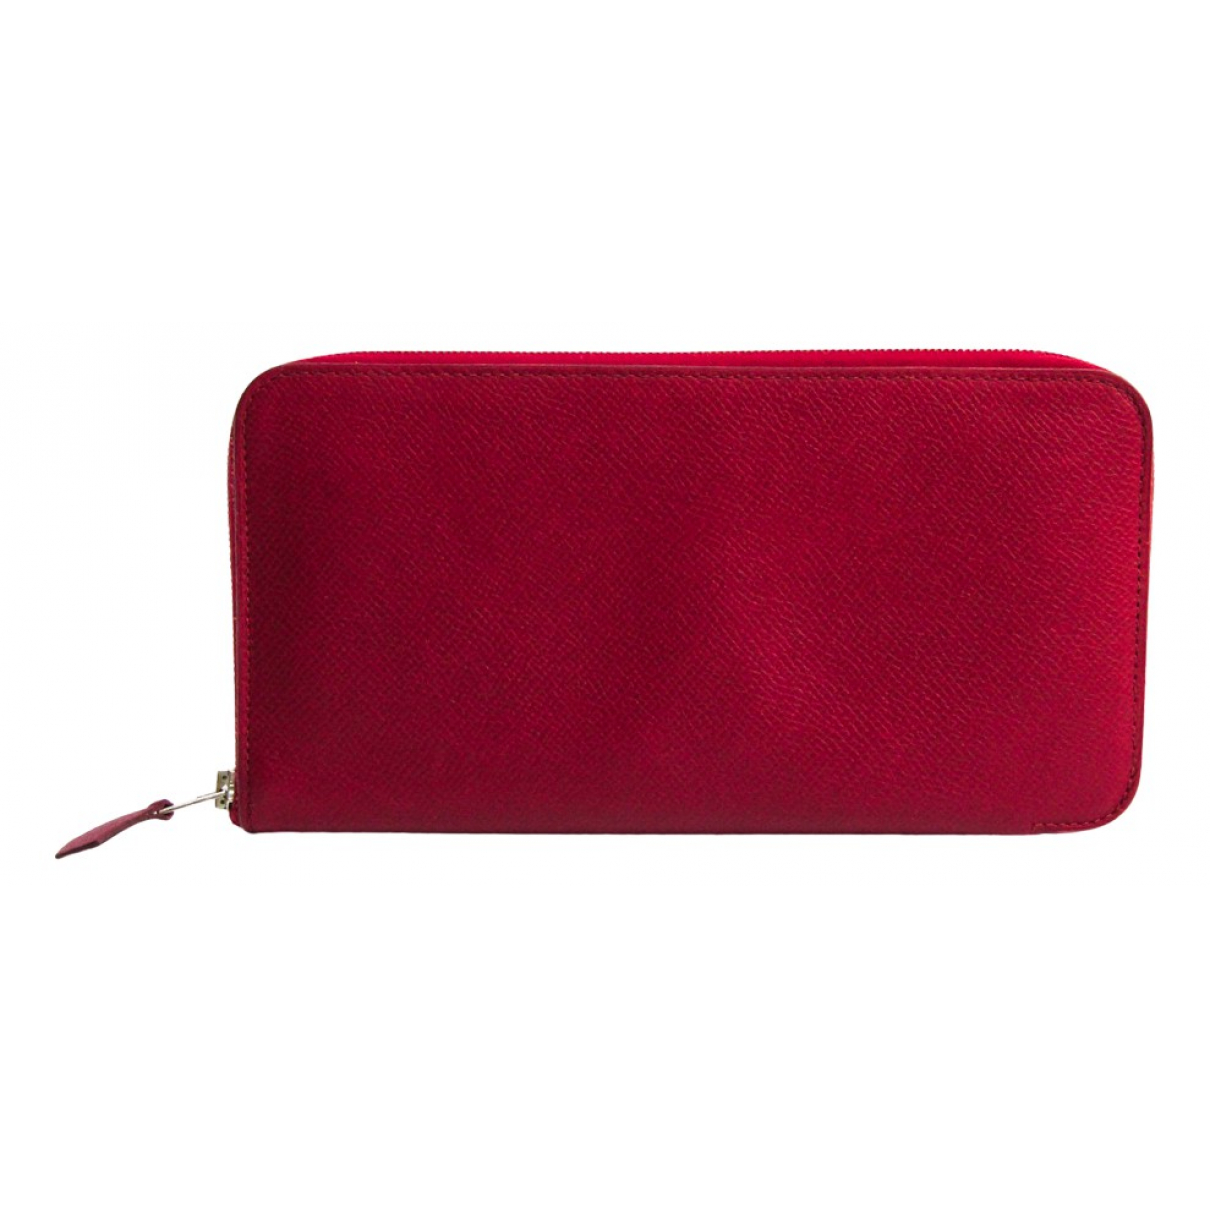 Hermès Azap Red Leather wallet for Women N